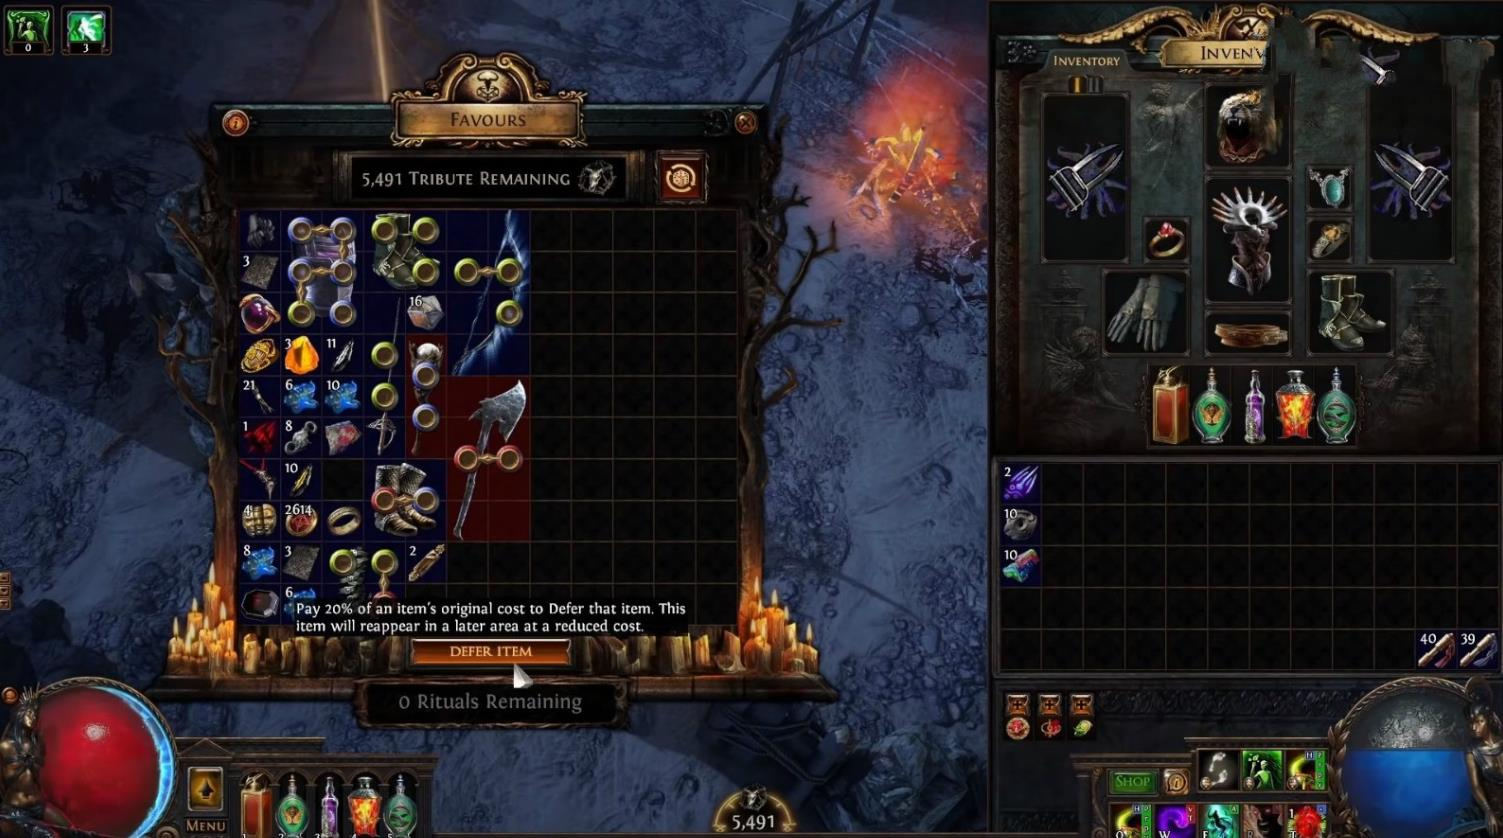 Path of Exile Extra Story 4: Lone Wolf Mode